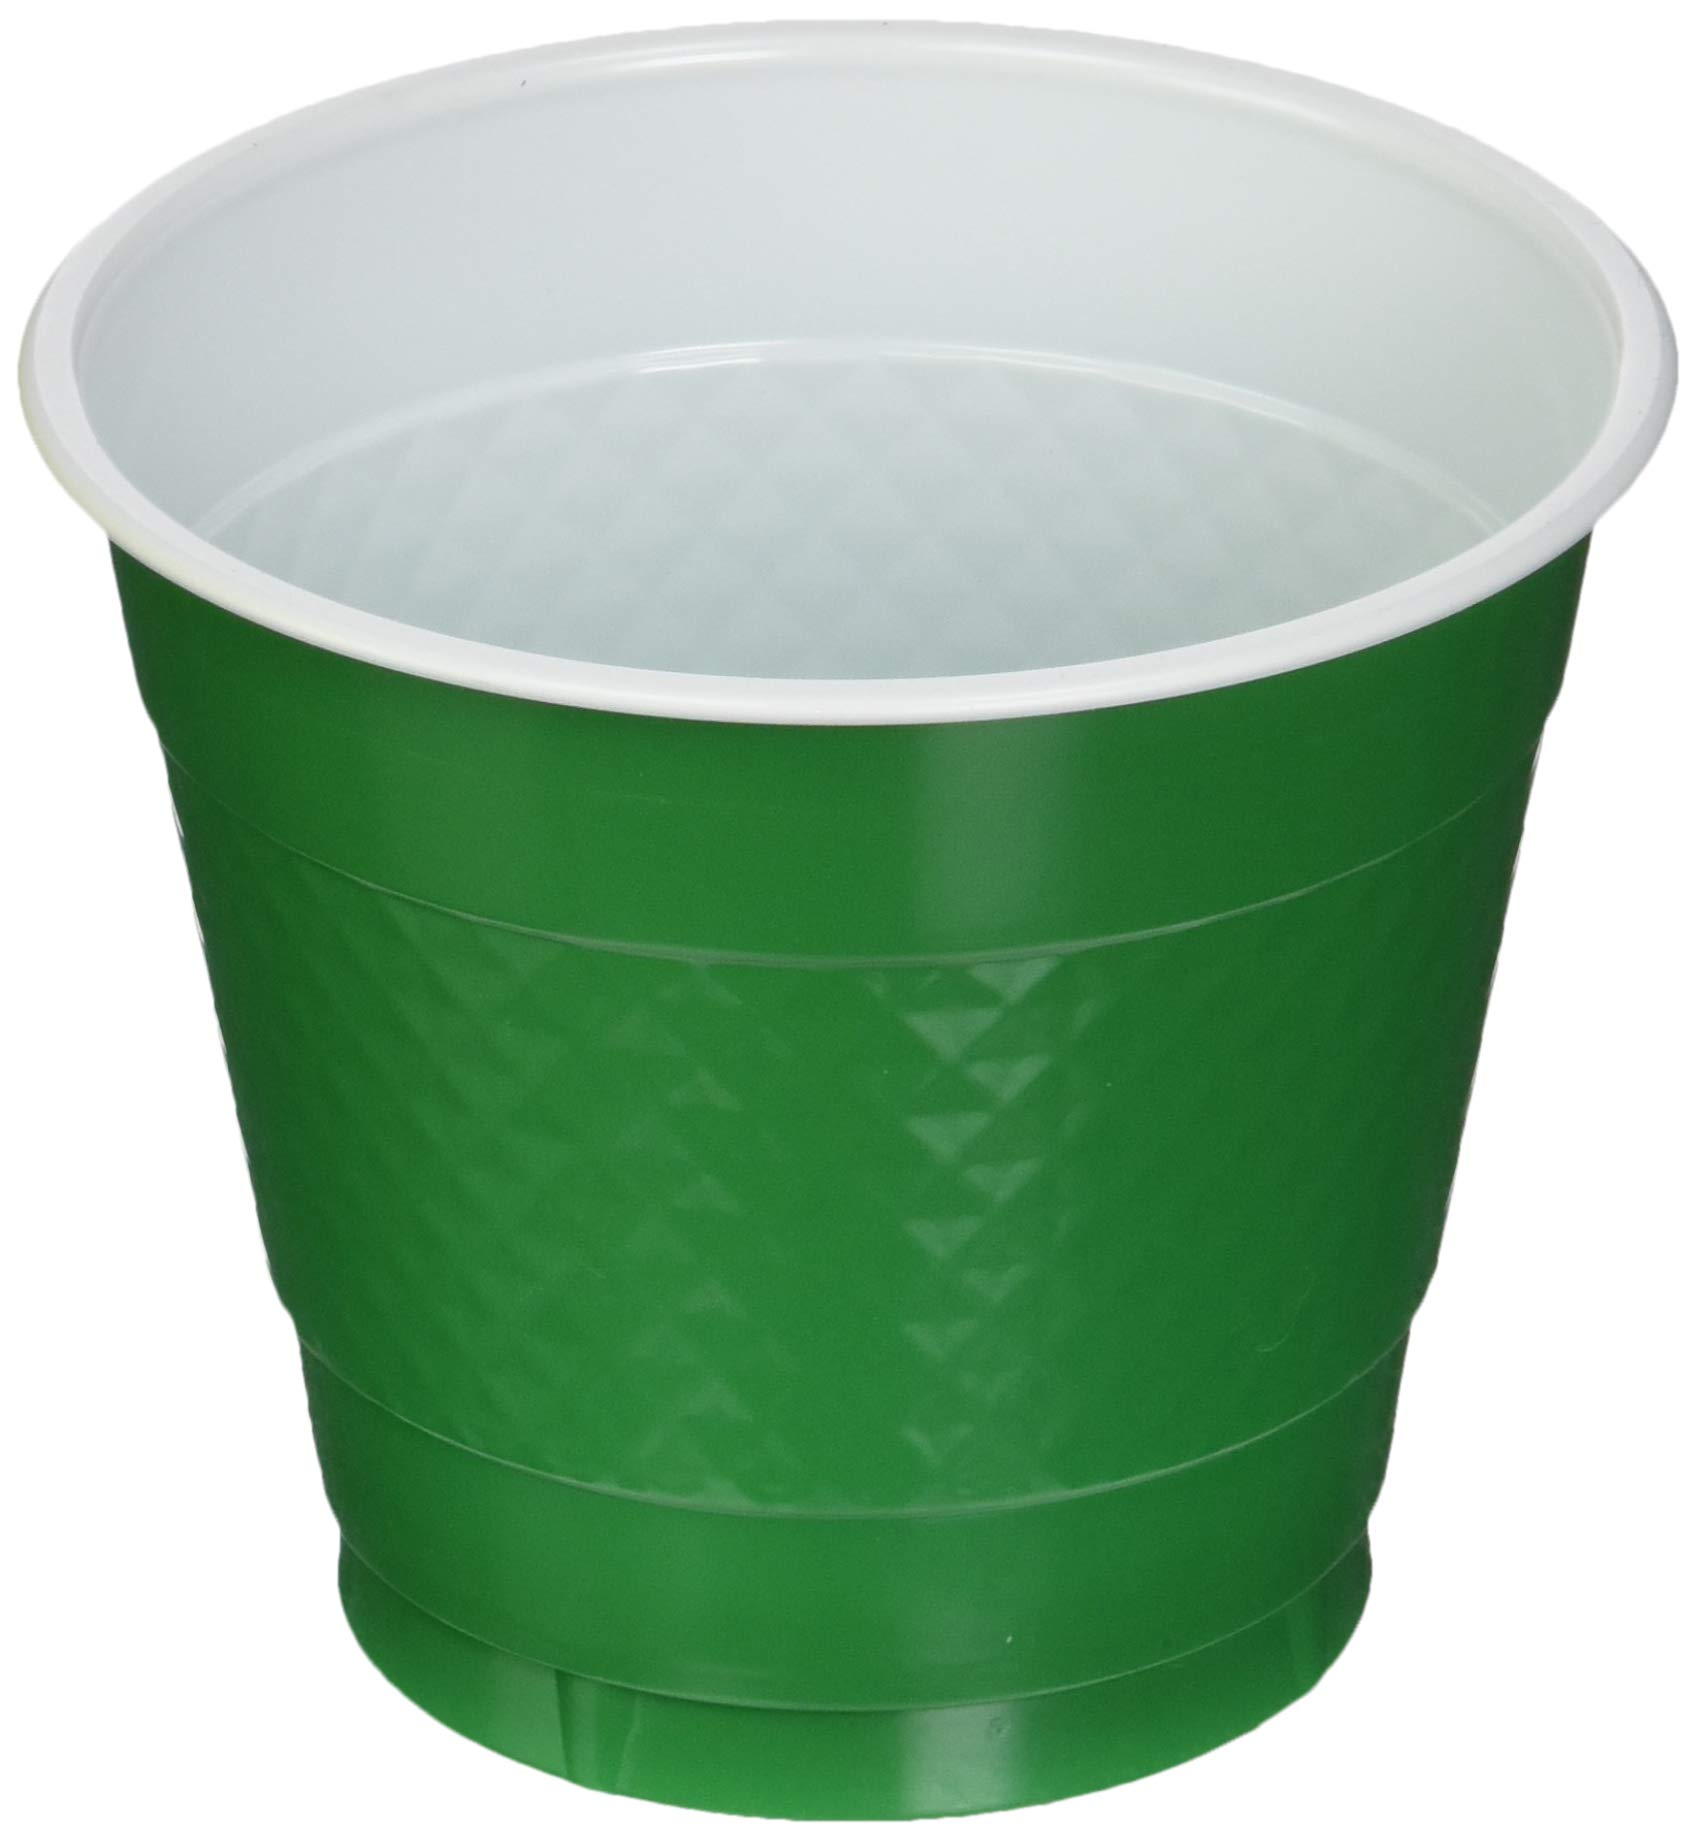 Amscan Festive Green Plastic Cups | 9oz. | Party Supply | 200 ct.